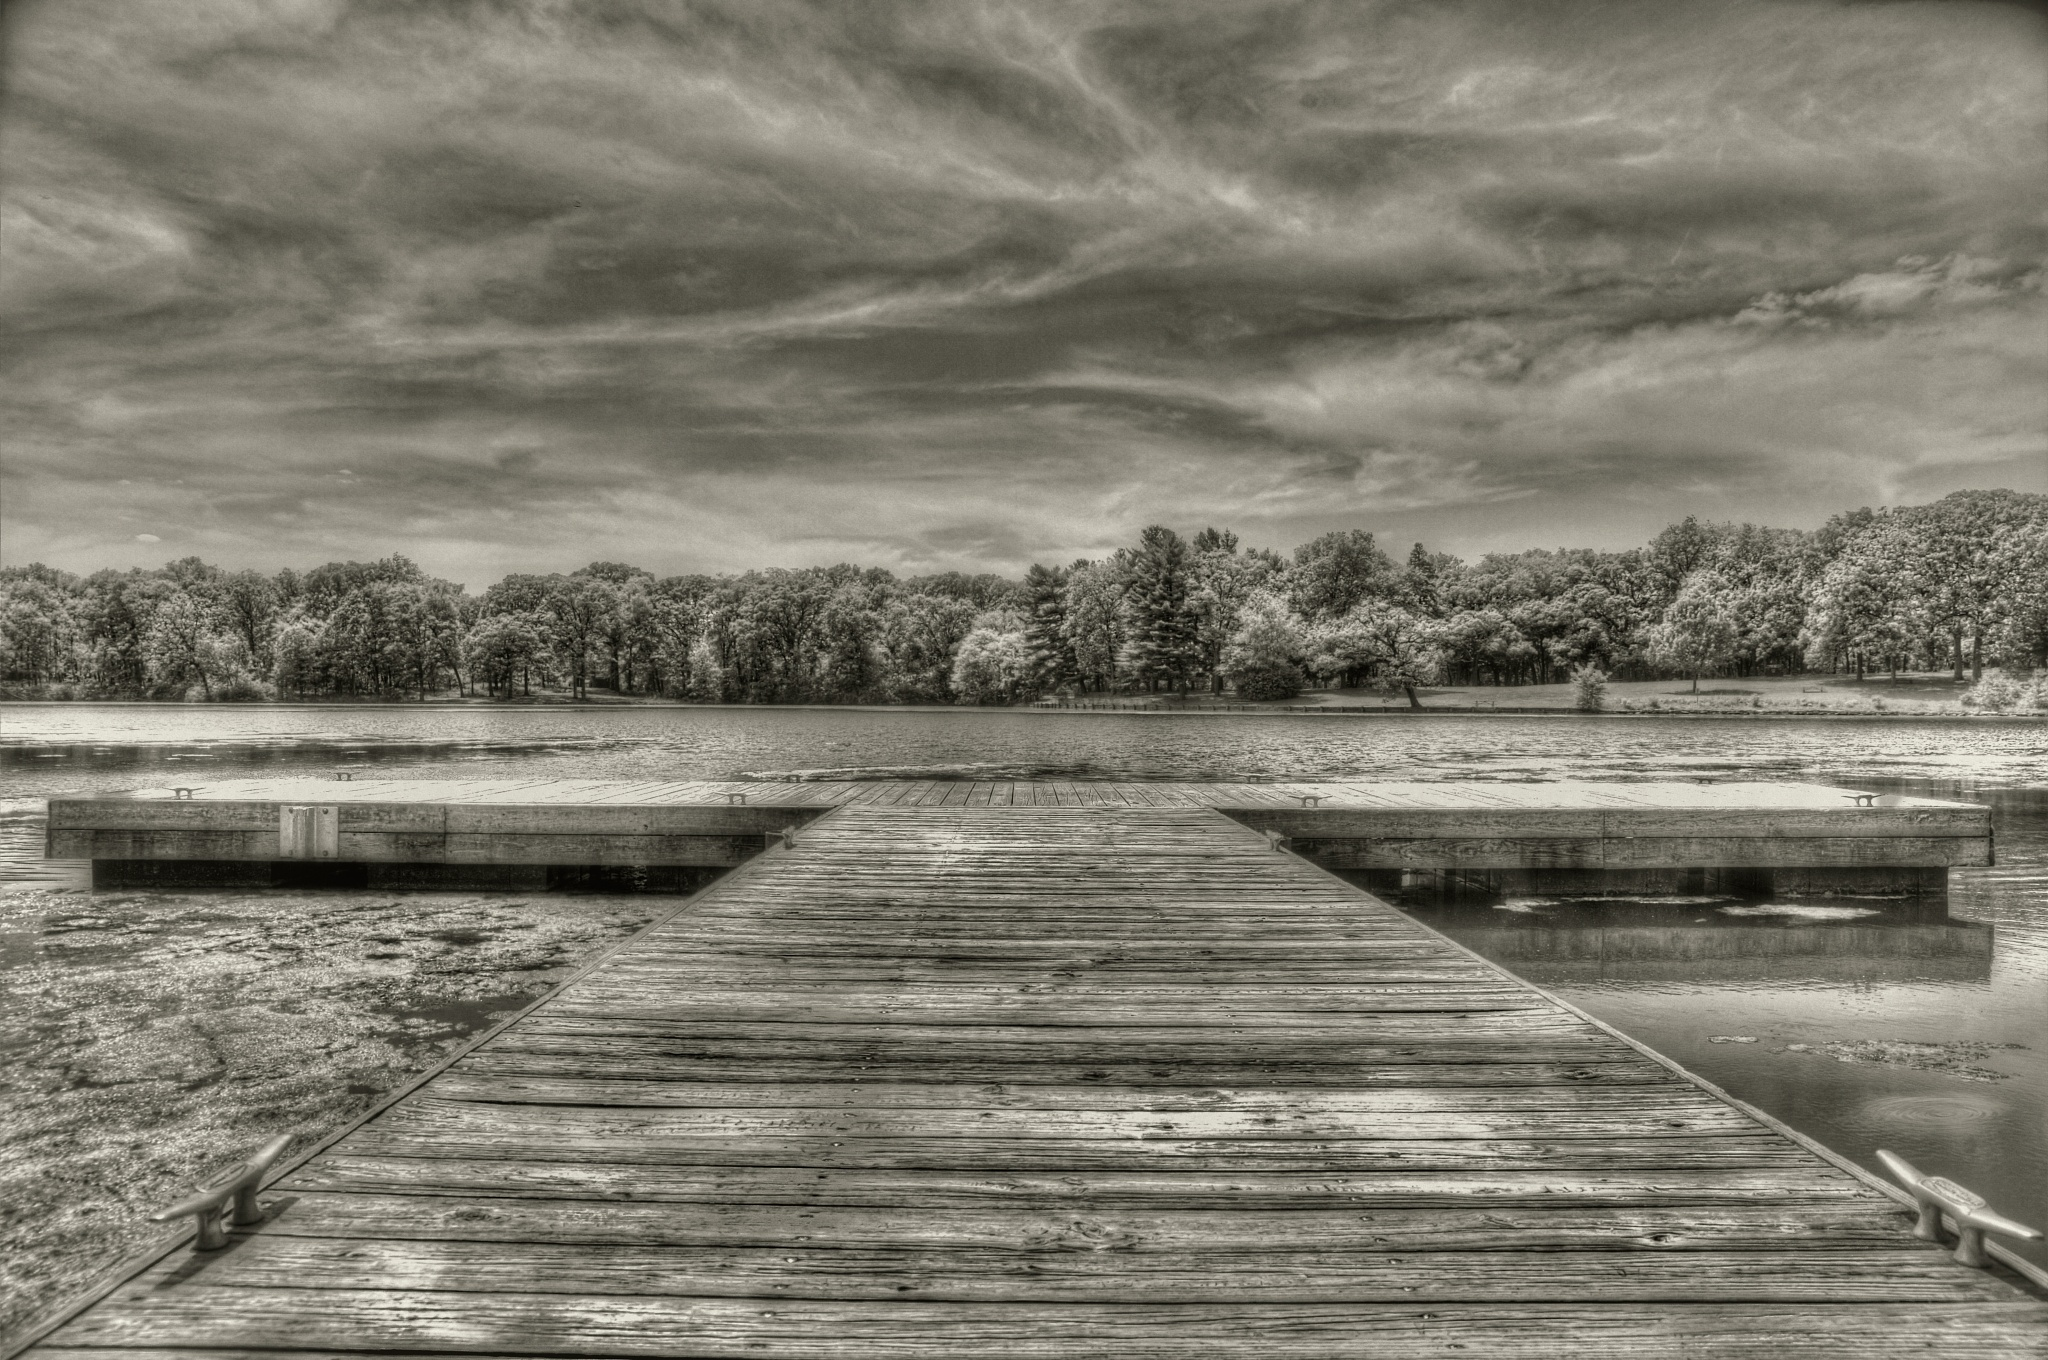 Dock of the bay by David Neesley